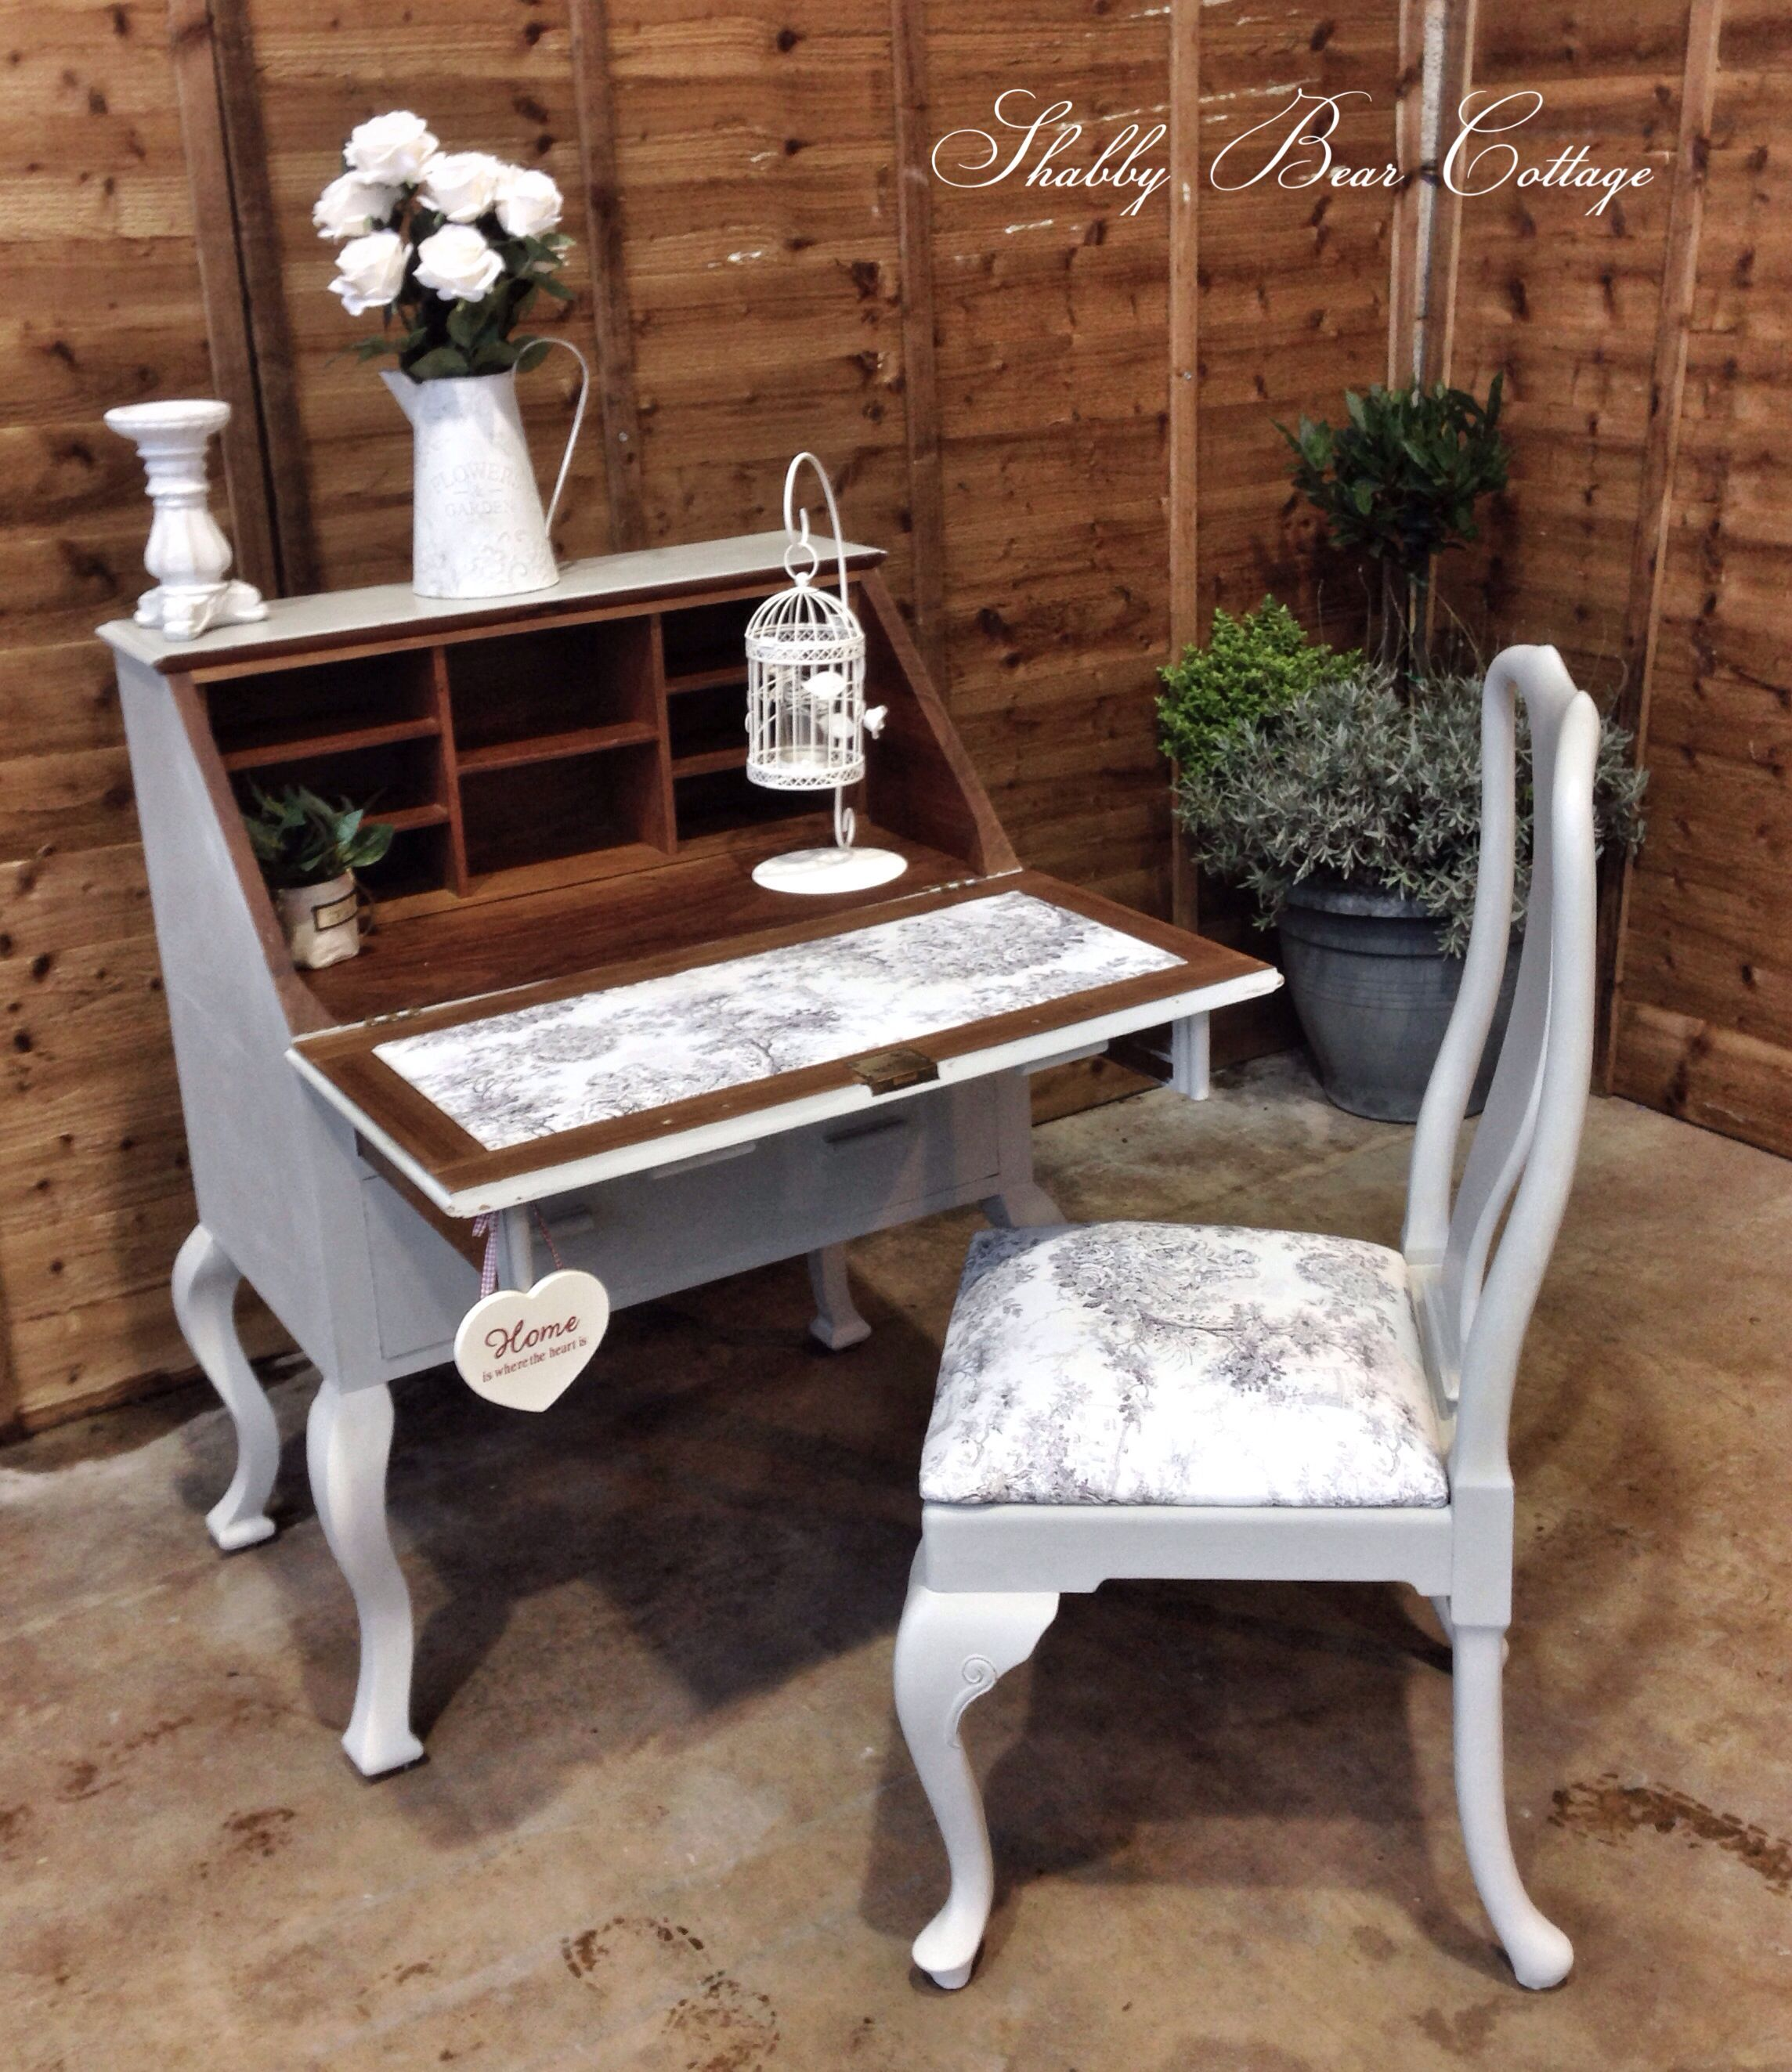 Solid Oak Antique Writing Bureau With Queen Anne Chair Upholstered In Toile Du Joy Sold Shabby Chic Furniture Chic Furniture Decor